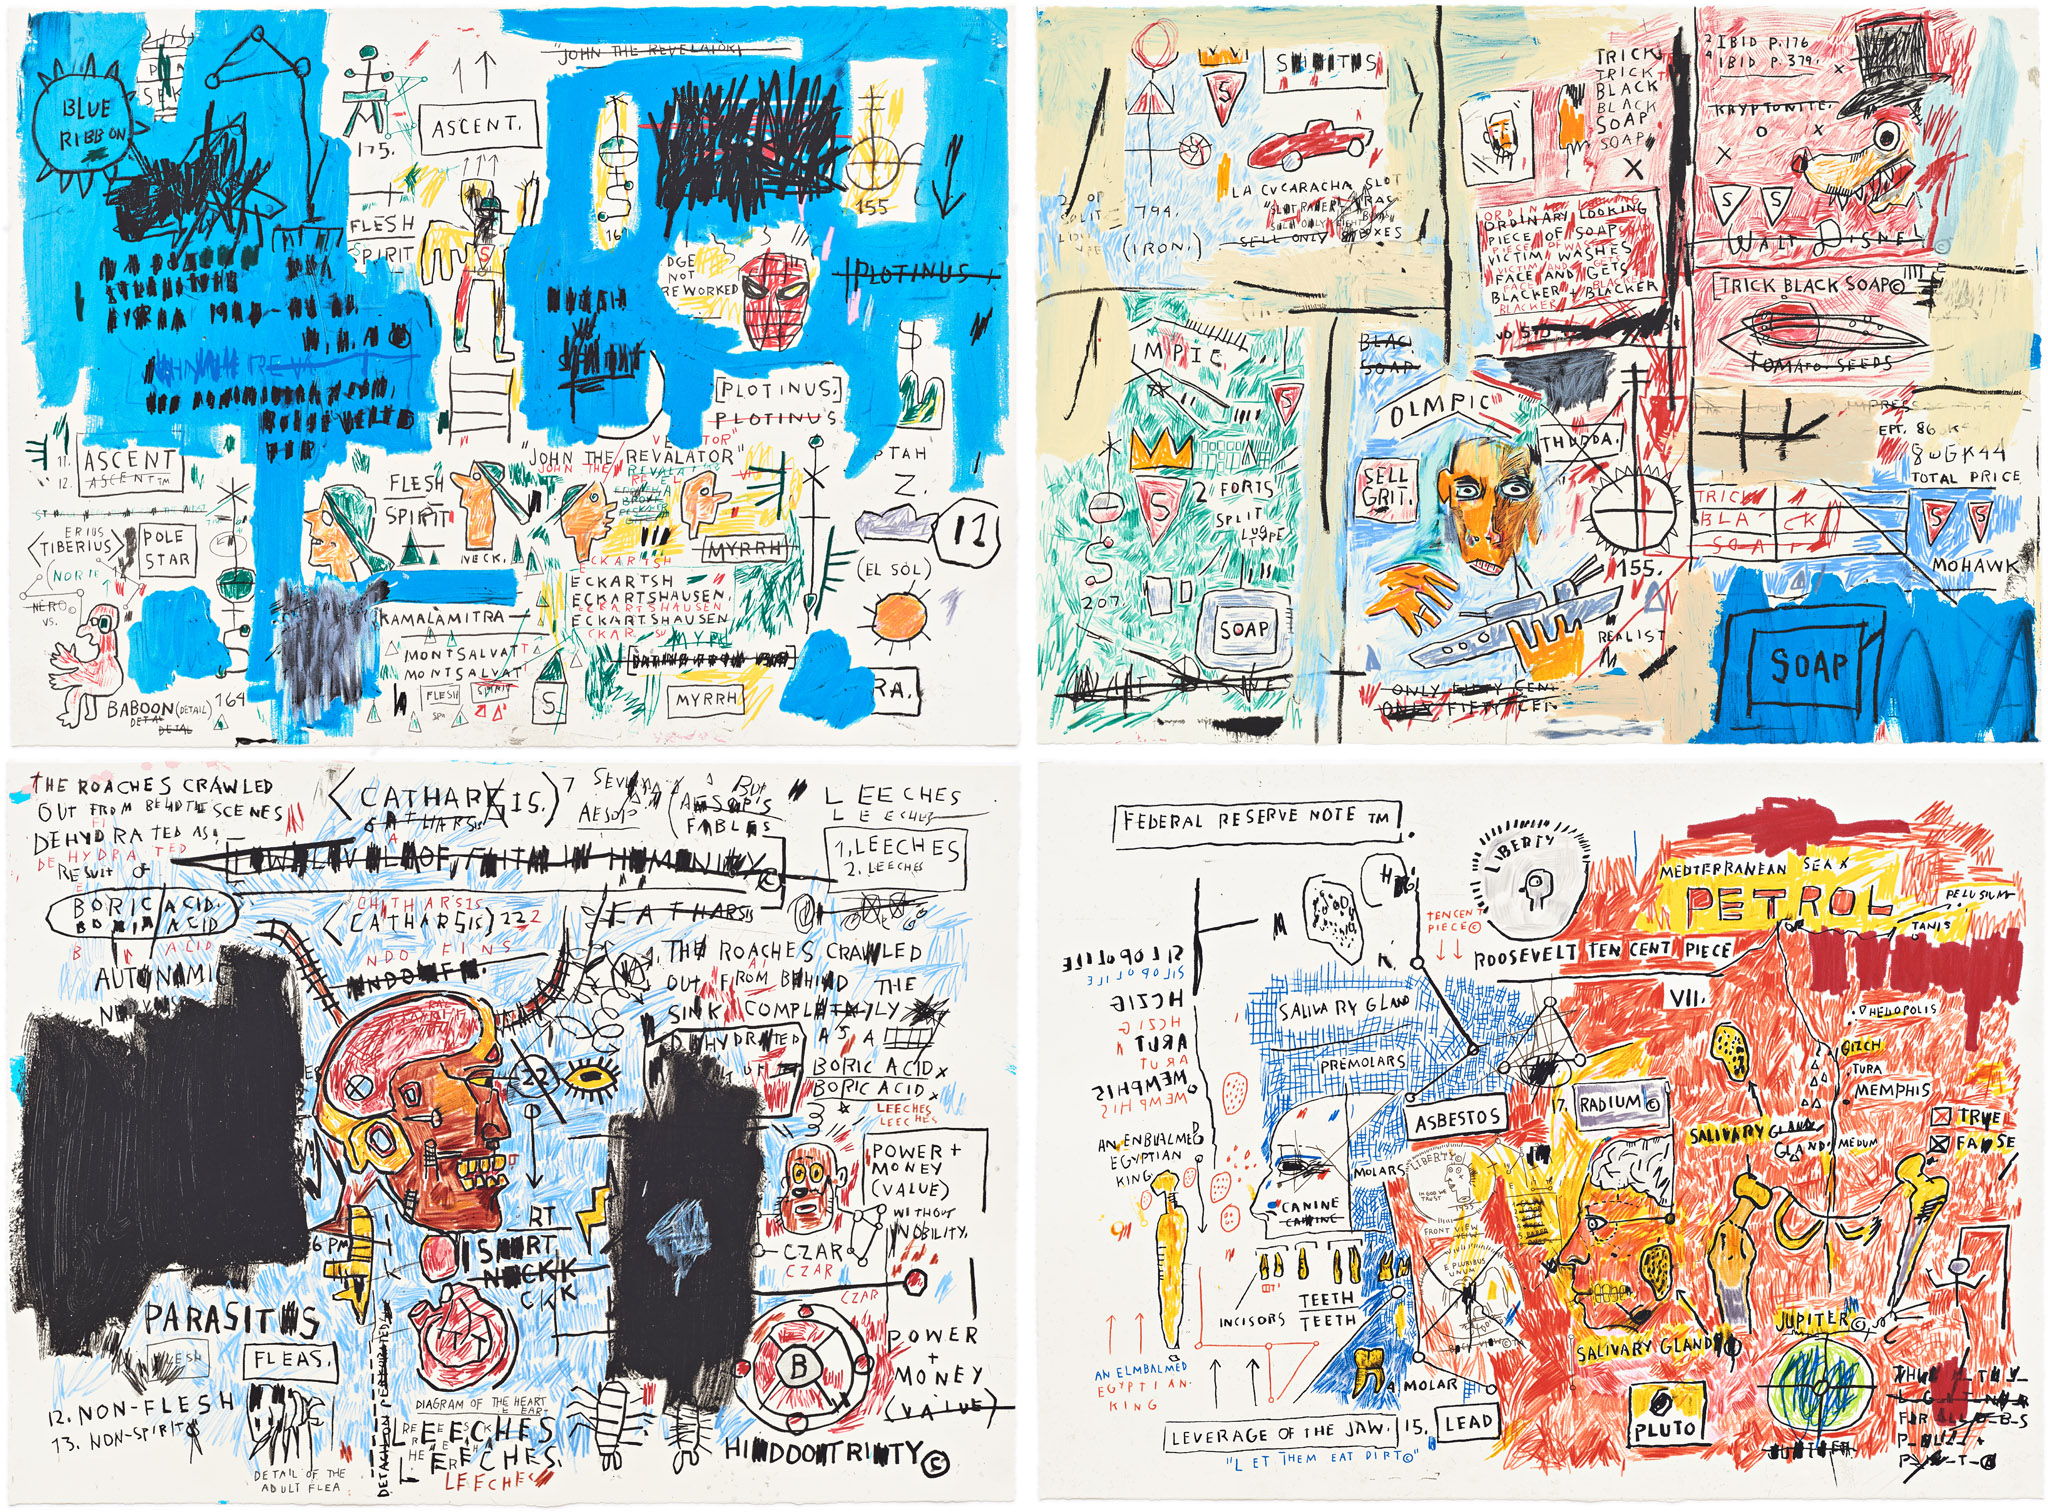 Ascent, Olympic, Leeches, Liberty by Jean-Michel Basquiat